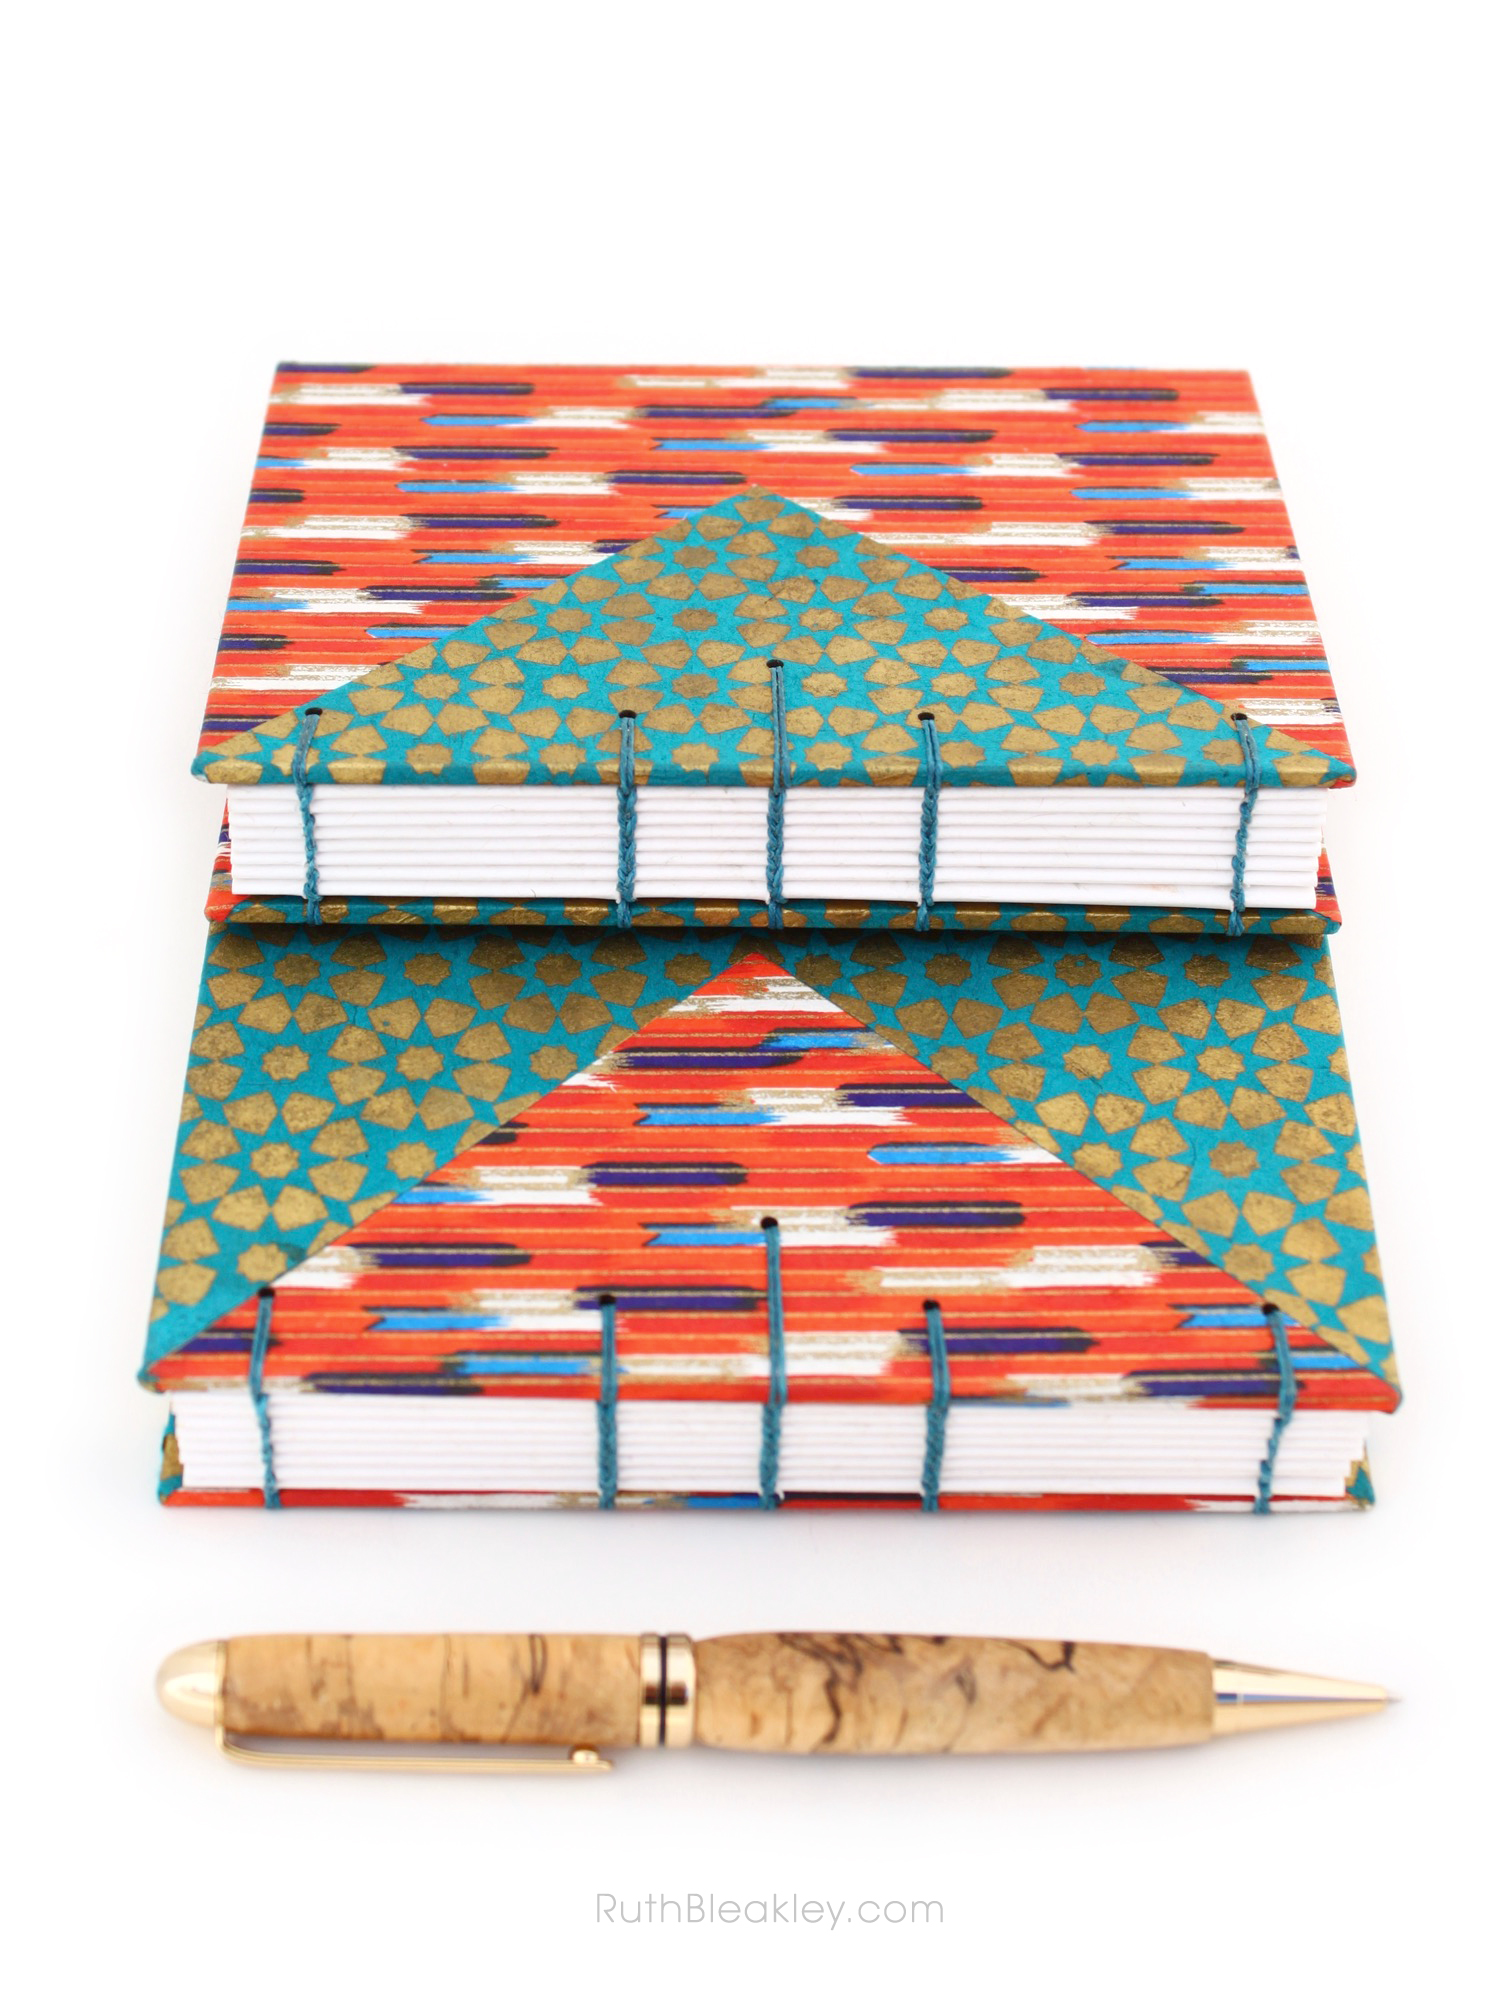 Chiyogami Twin Journals with Colorful Triangle Inlays handmade by Ruth Bleakley - 13